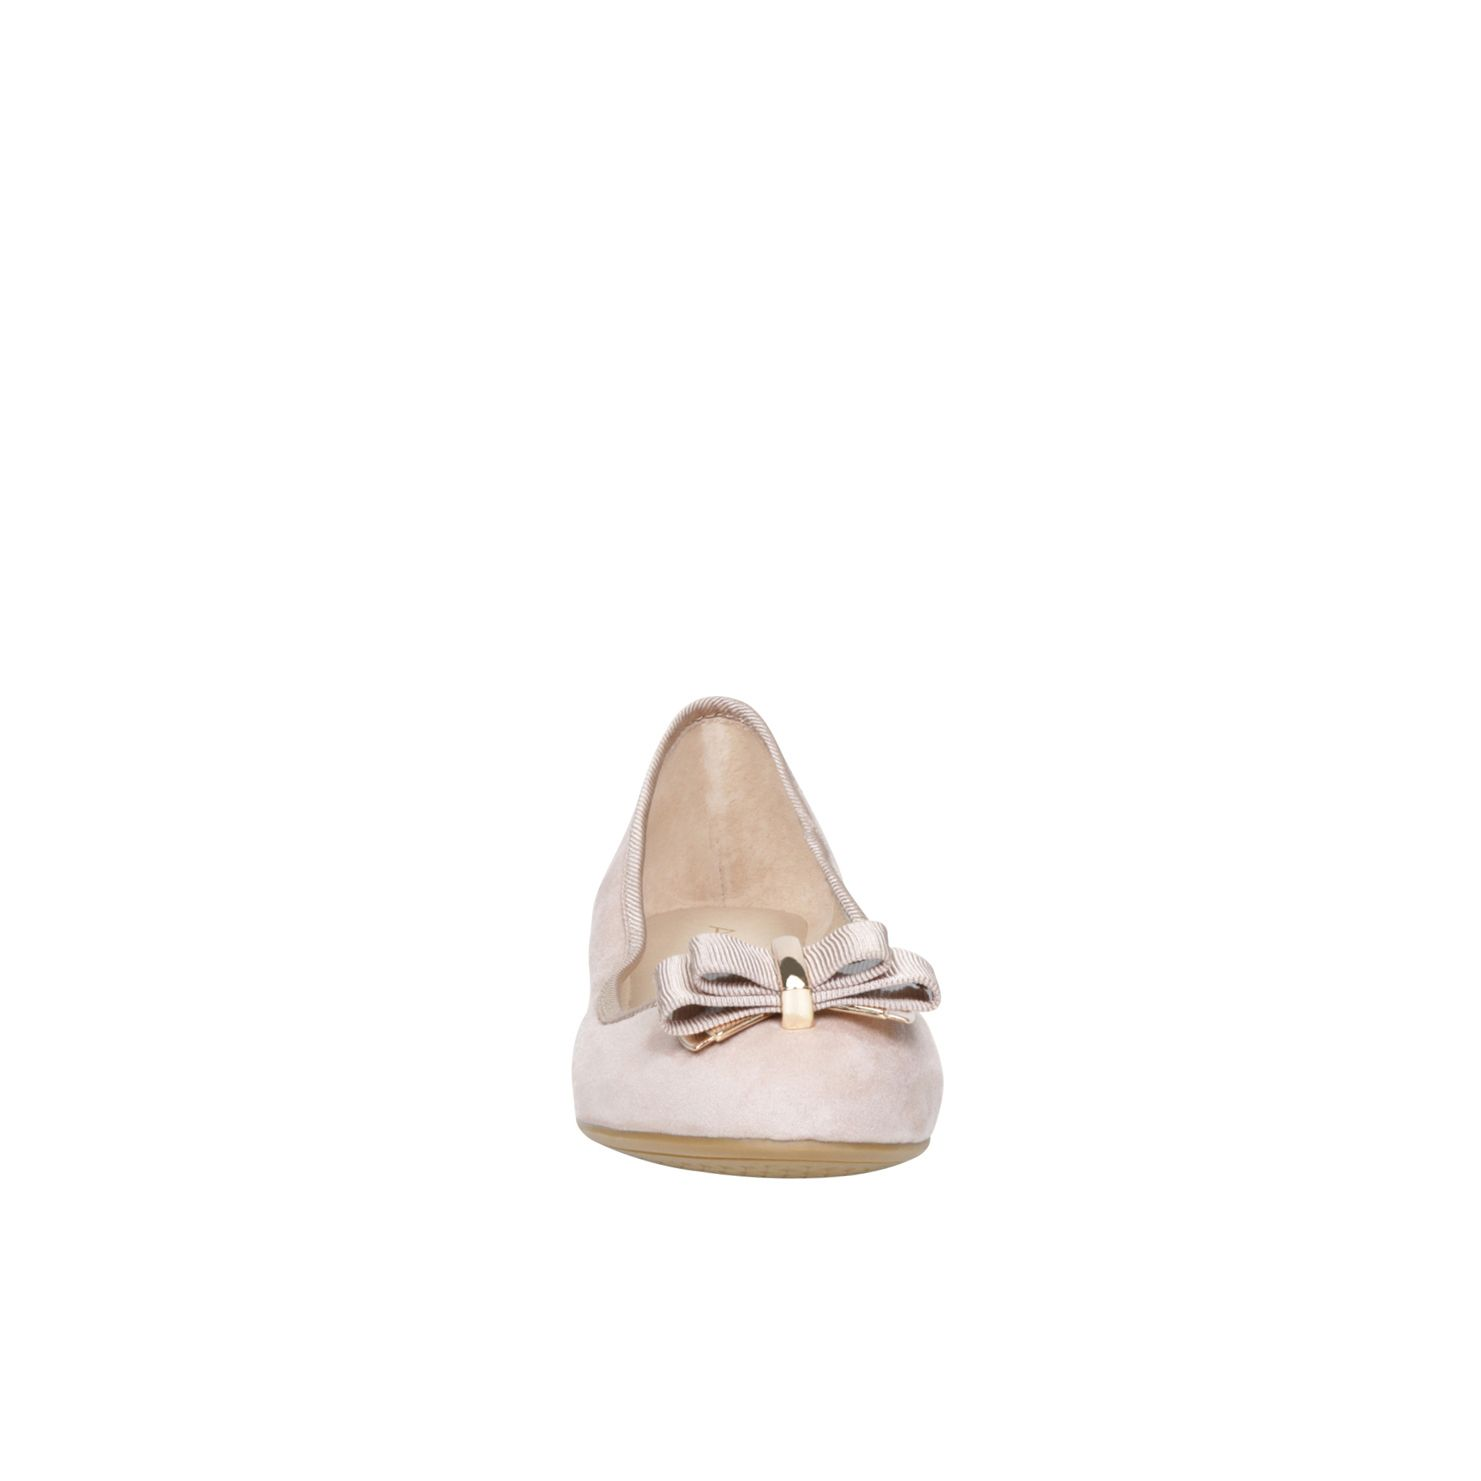 Rozen ballerina shoes